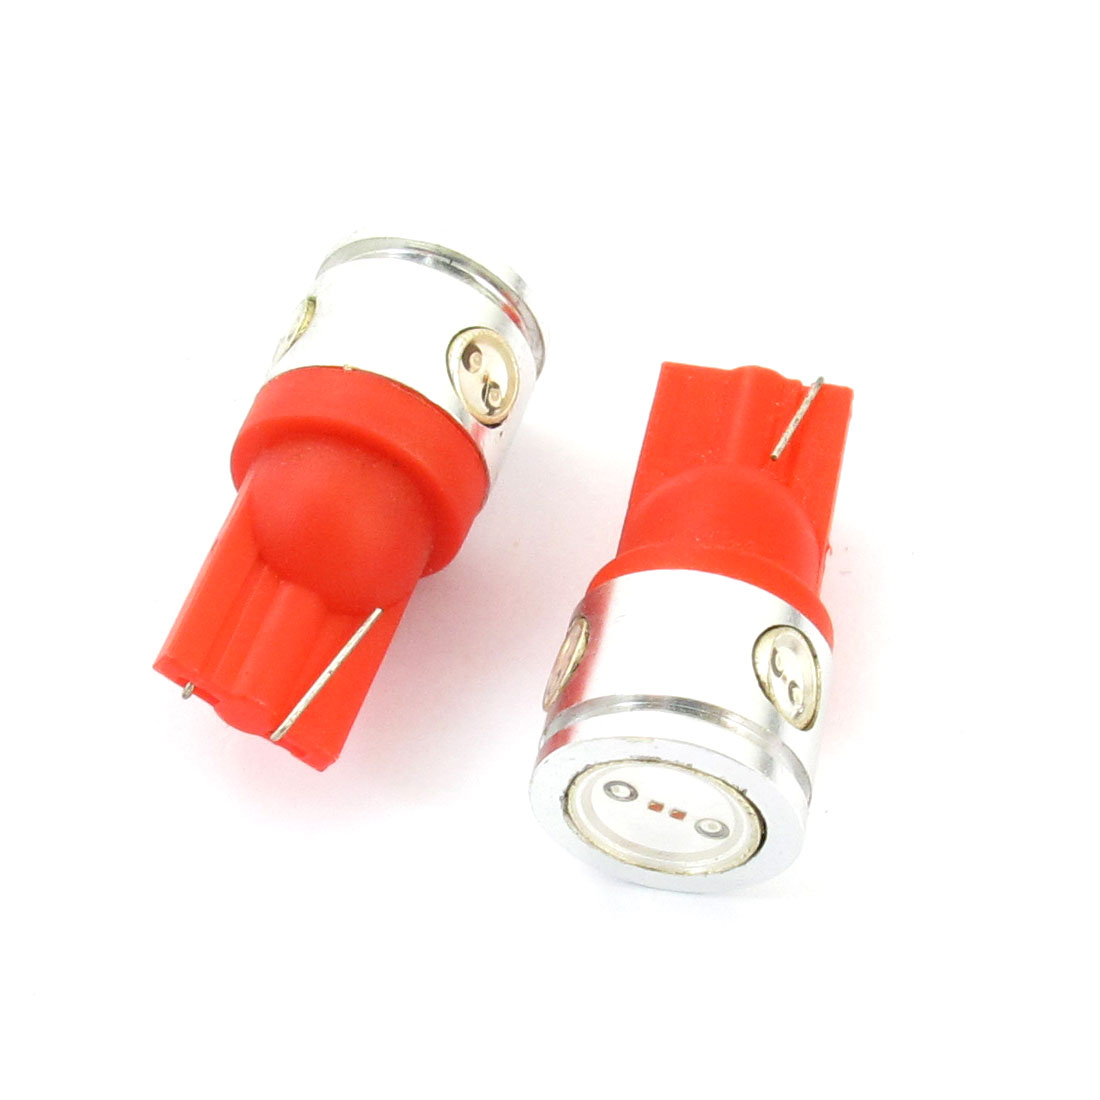 Pair DC 12V T10 W5W 4 Red Auto Side Wedge Dashboard Lamp Bulbs 2.5W